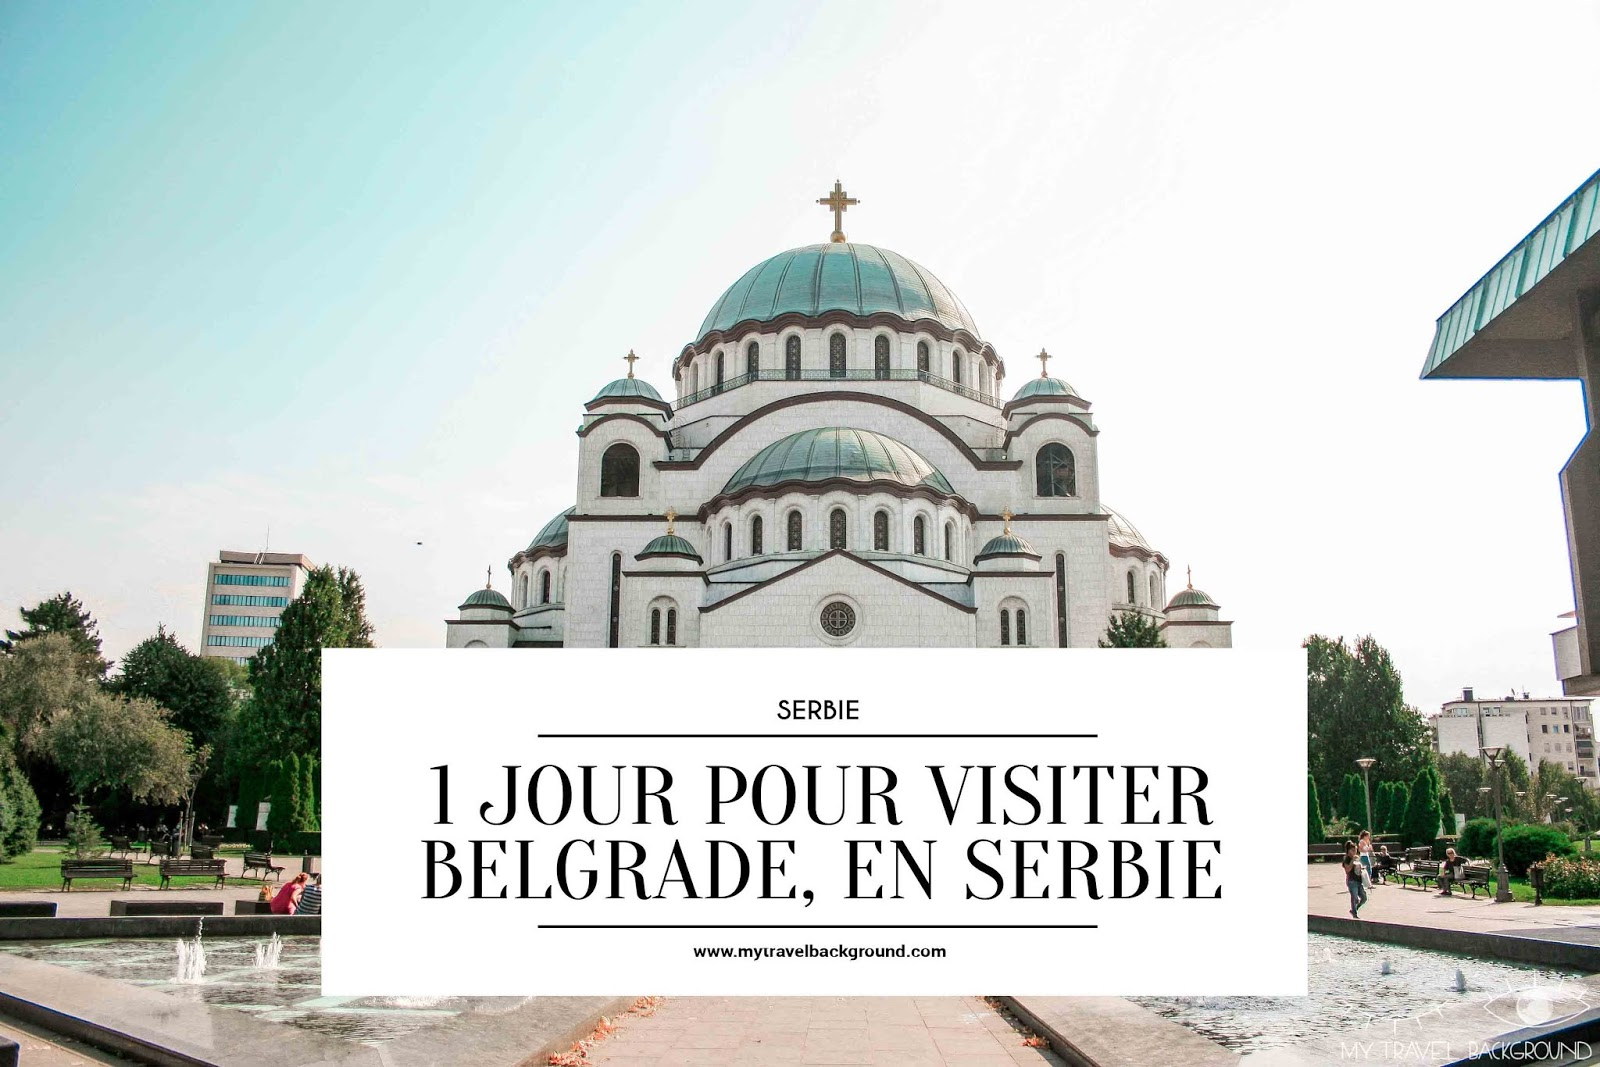 My Travel Background : 1 jour pour visiter Belgrade, la capitale de la Serbie